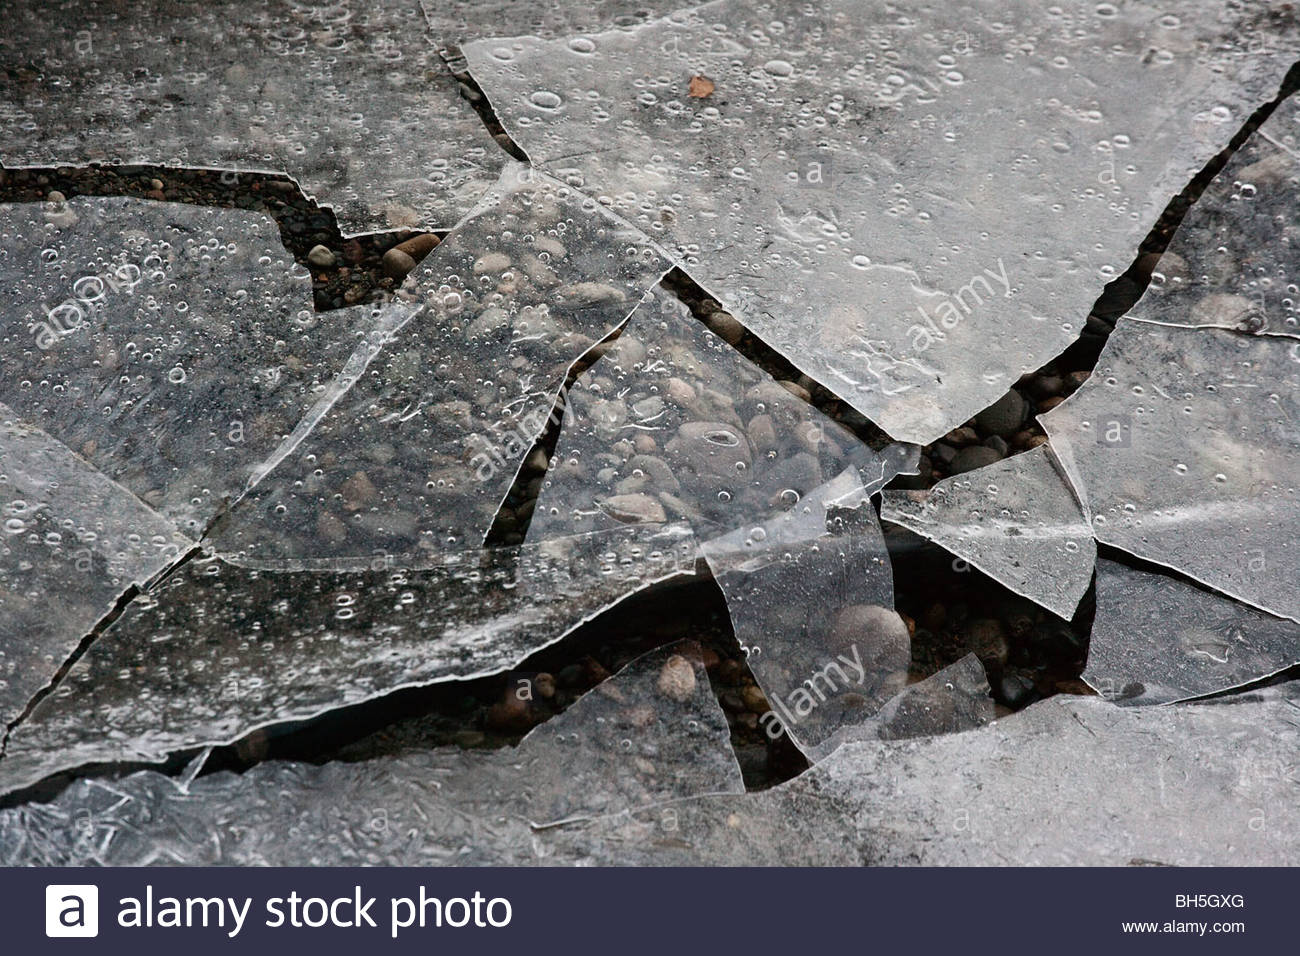 Thin ice fractures into puzzle pieces to reveal stones and shallow stream below - Stock Image